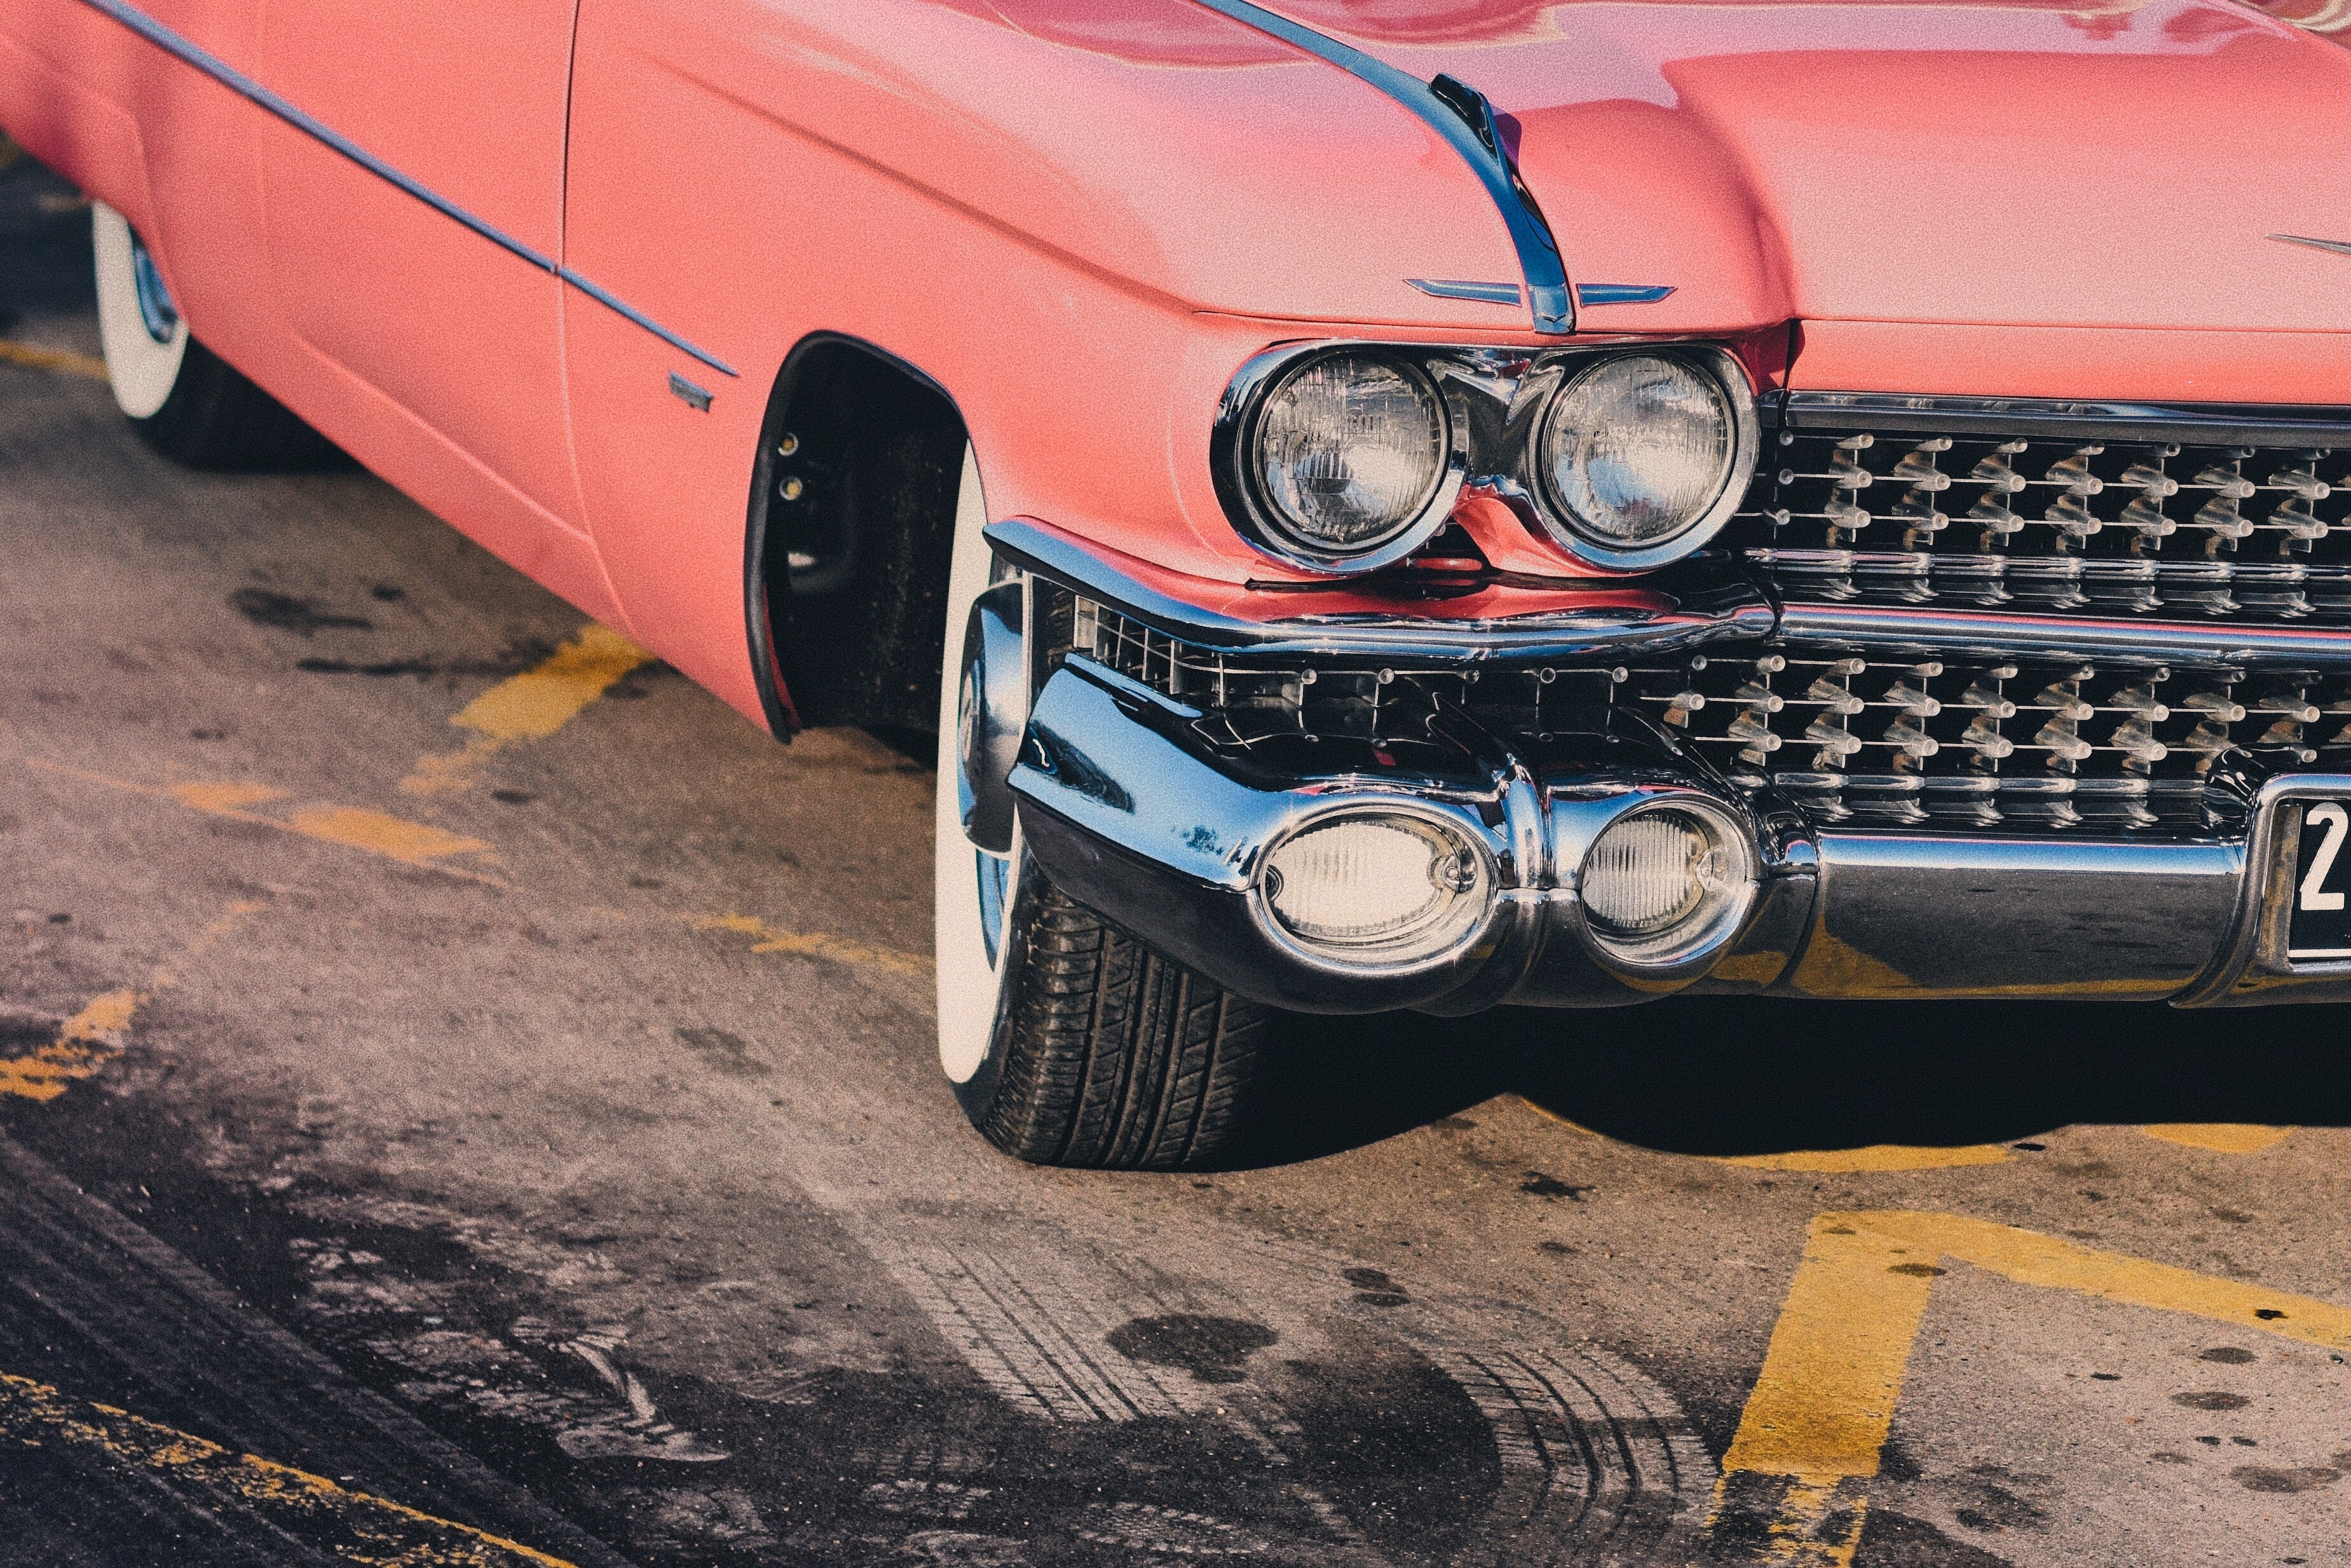 A Shot Of The Front Right View Of A Classic Pink Chevrolet Behind The Skid  Marks